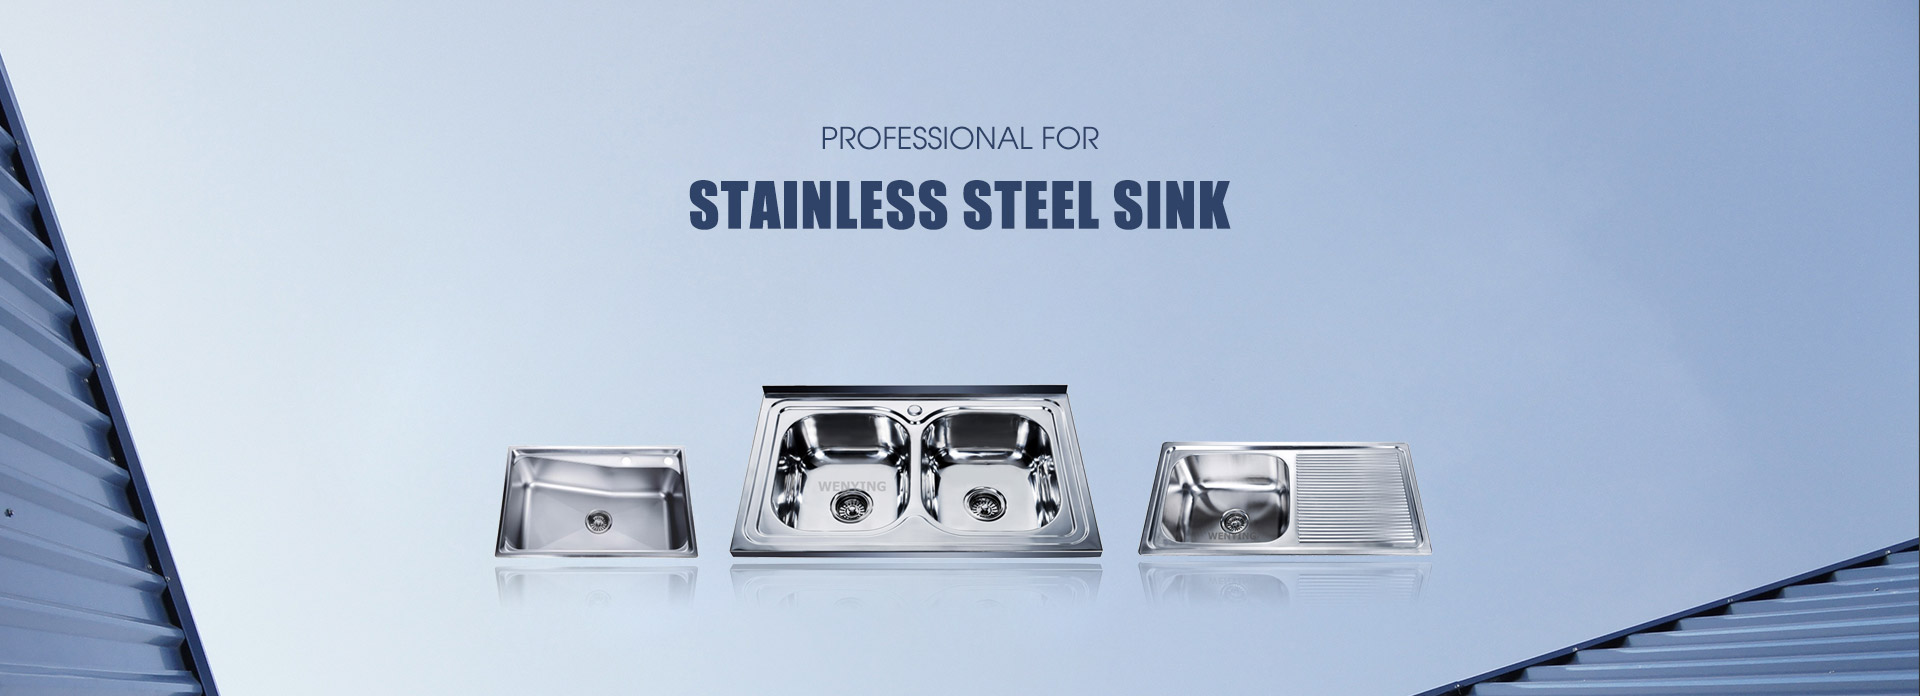 professional for Stainless Steel Sink